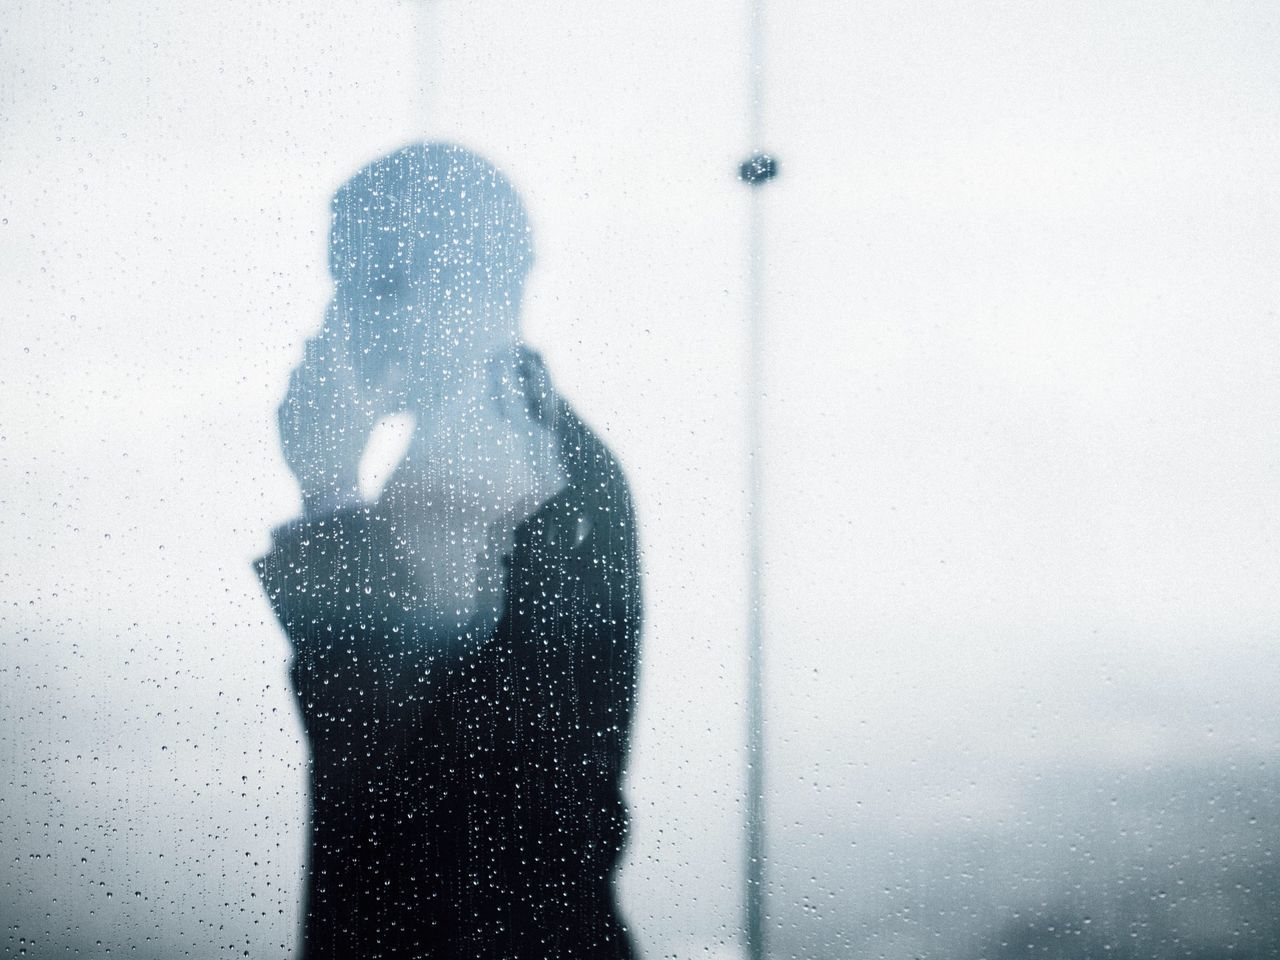 Side view of a silhouette man against waterdrops on glass